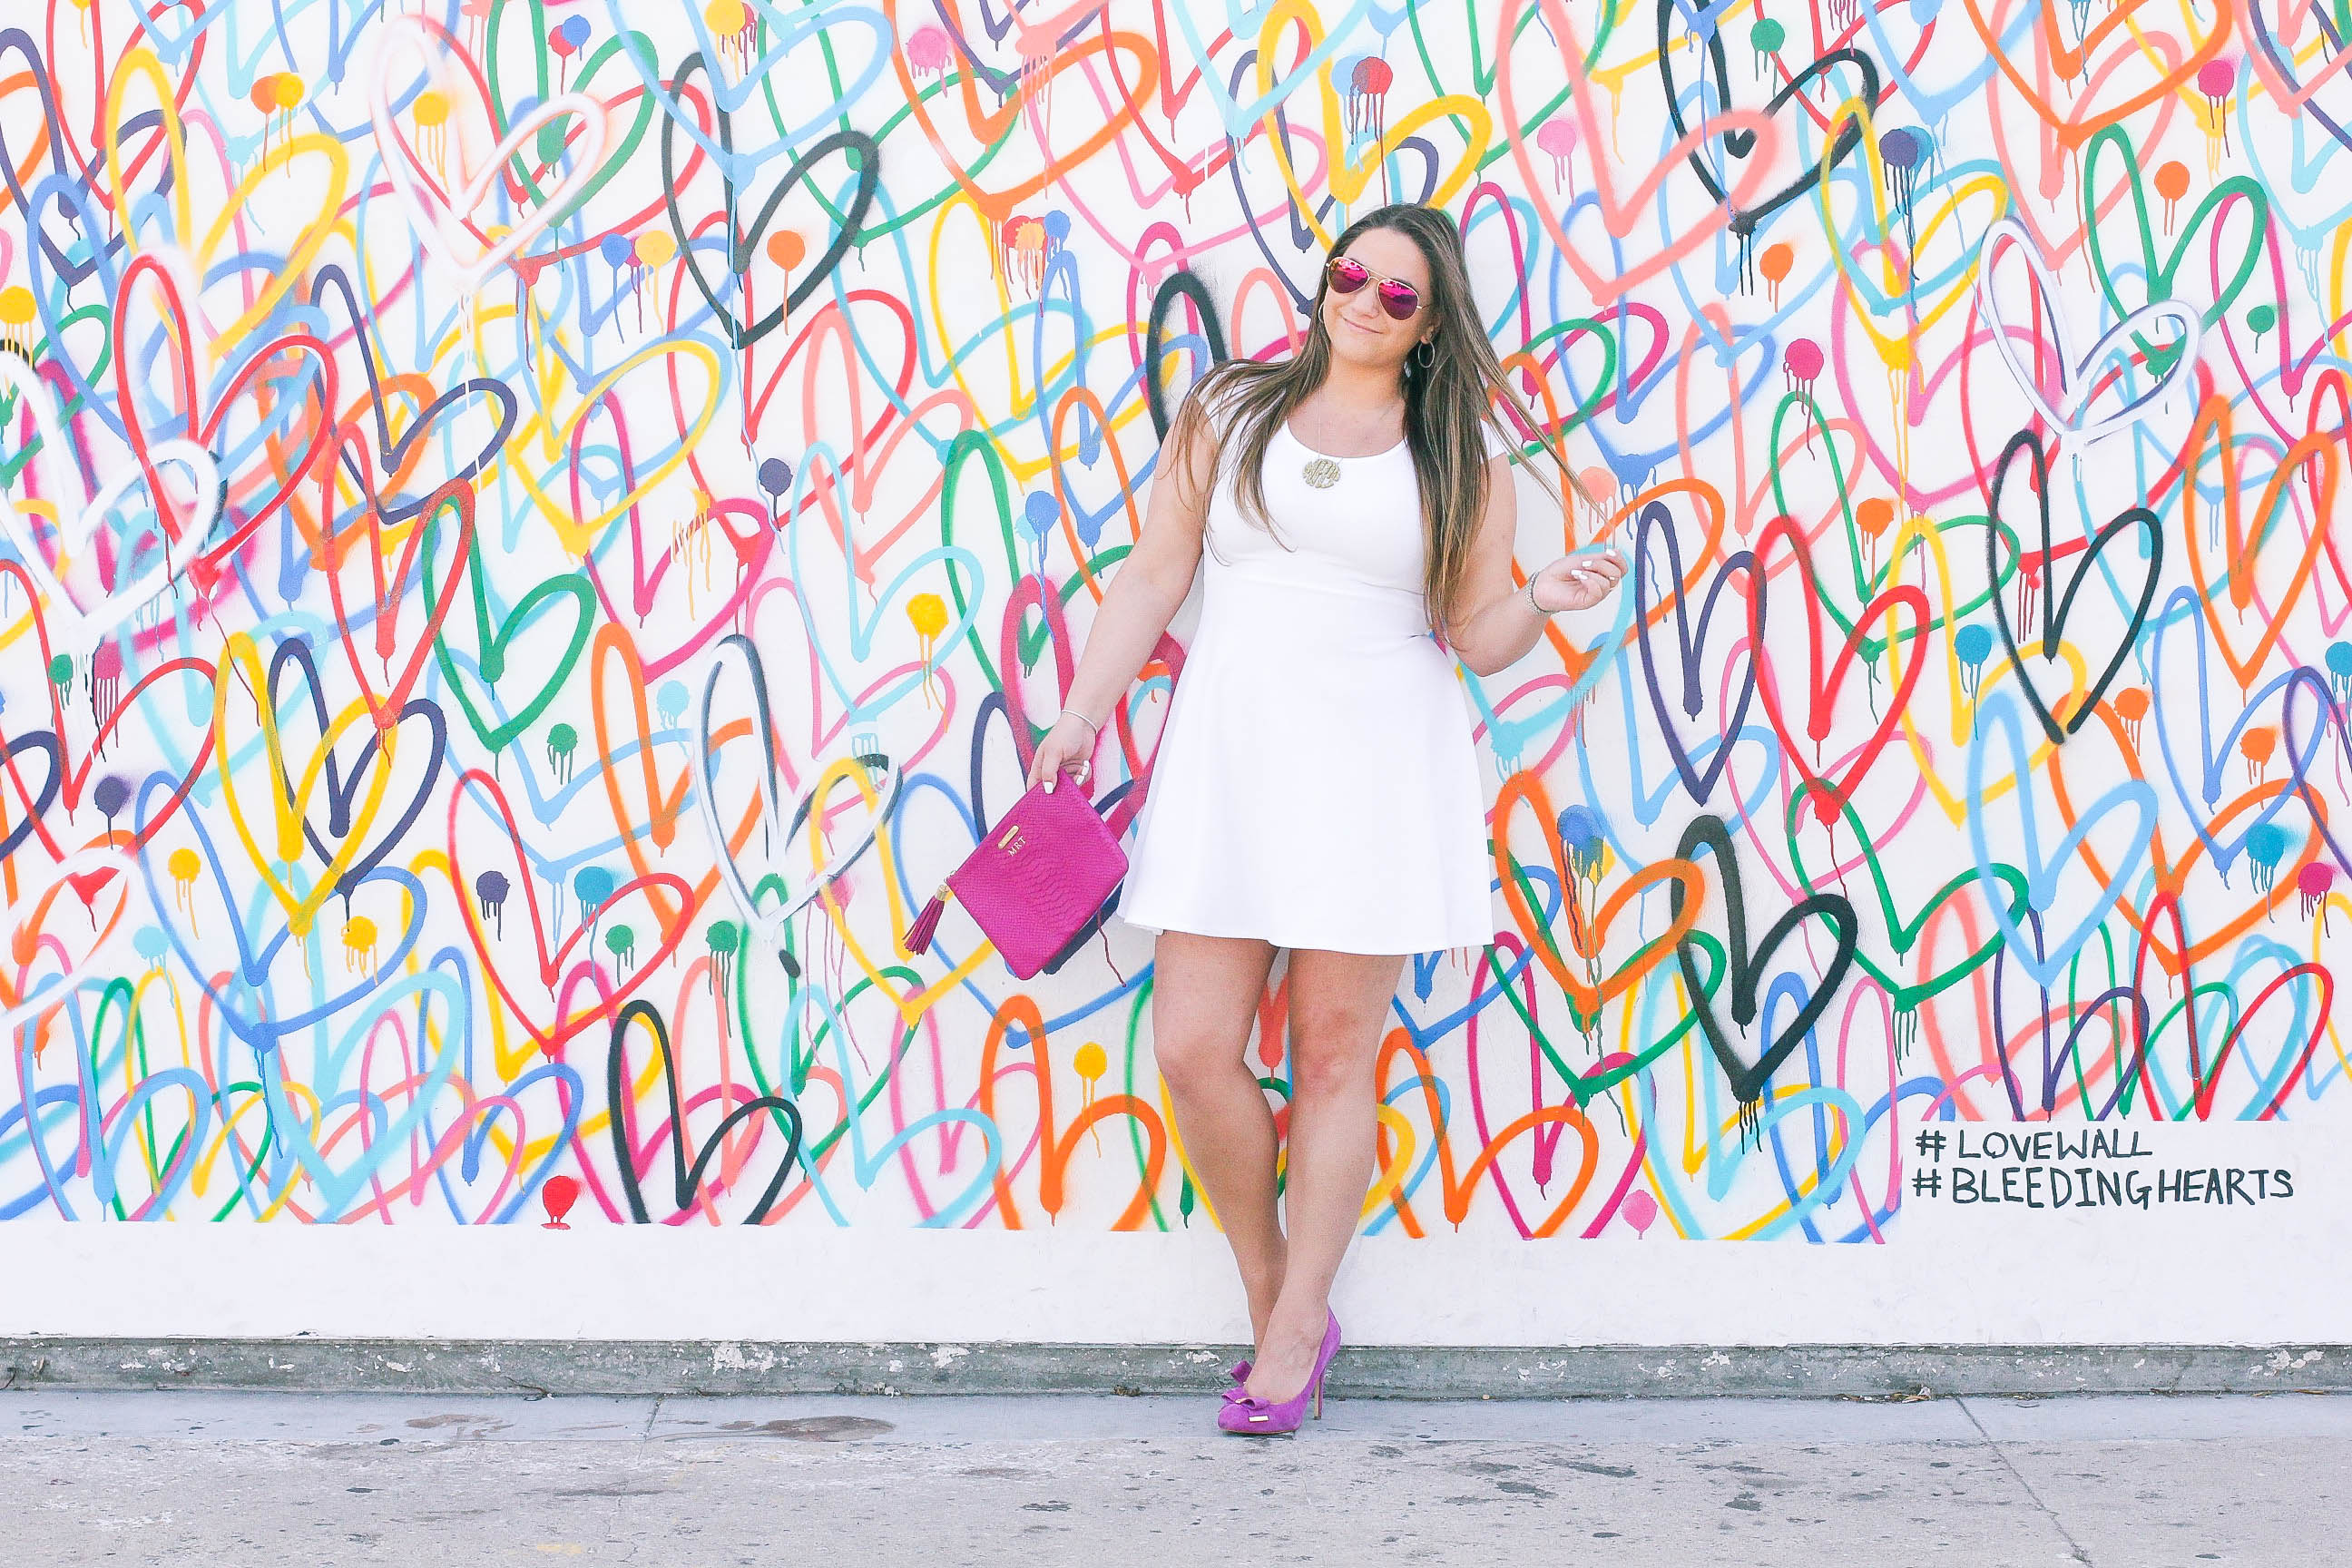 missyonmadison, melissa tierney, missy on madison instagram, pink pumps, pink bow pumps, michael kors heels, fuschia pink pumps, fuschia pumps, white dress, white fit and flare dress, gigi ny, gigi ny magenta clutch, pink clutch, pink ray bans, pink aviators, monogram necklace, heart wall, abbot kinney, venice, heart wall venice, vday, valentines day, valentines day style,